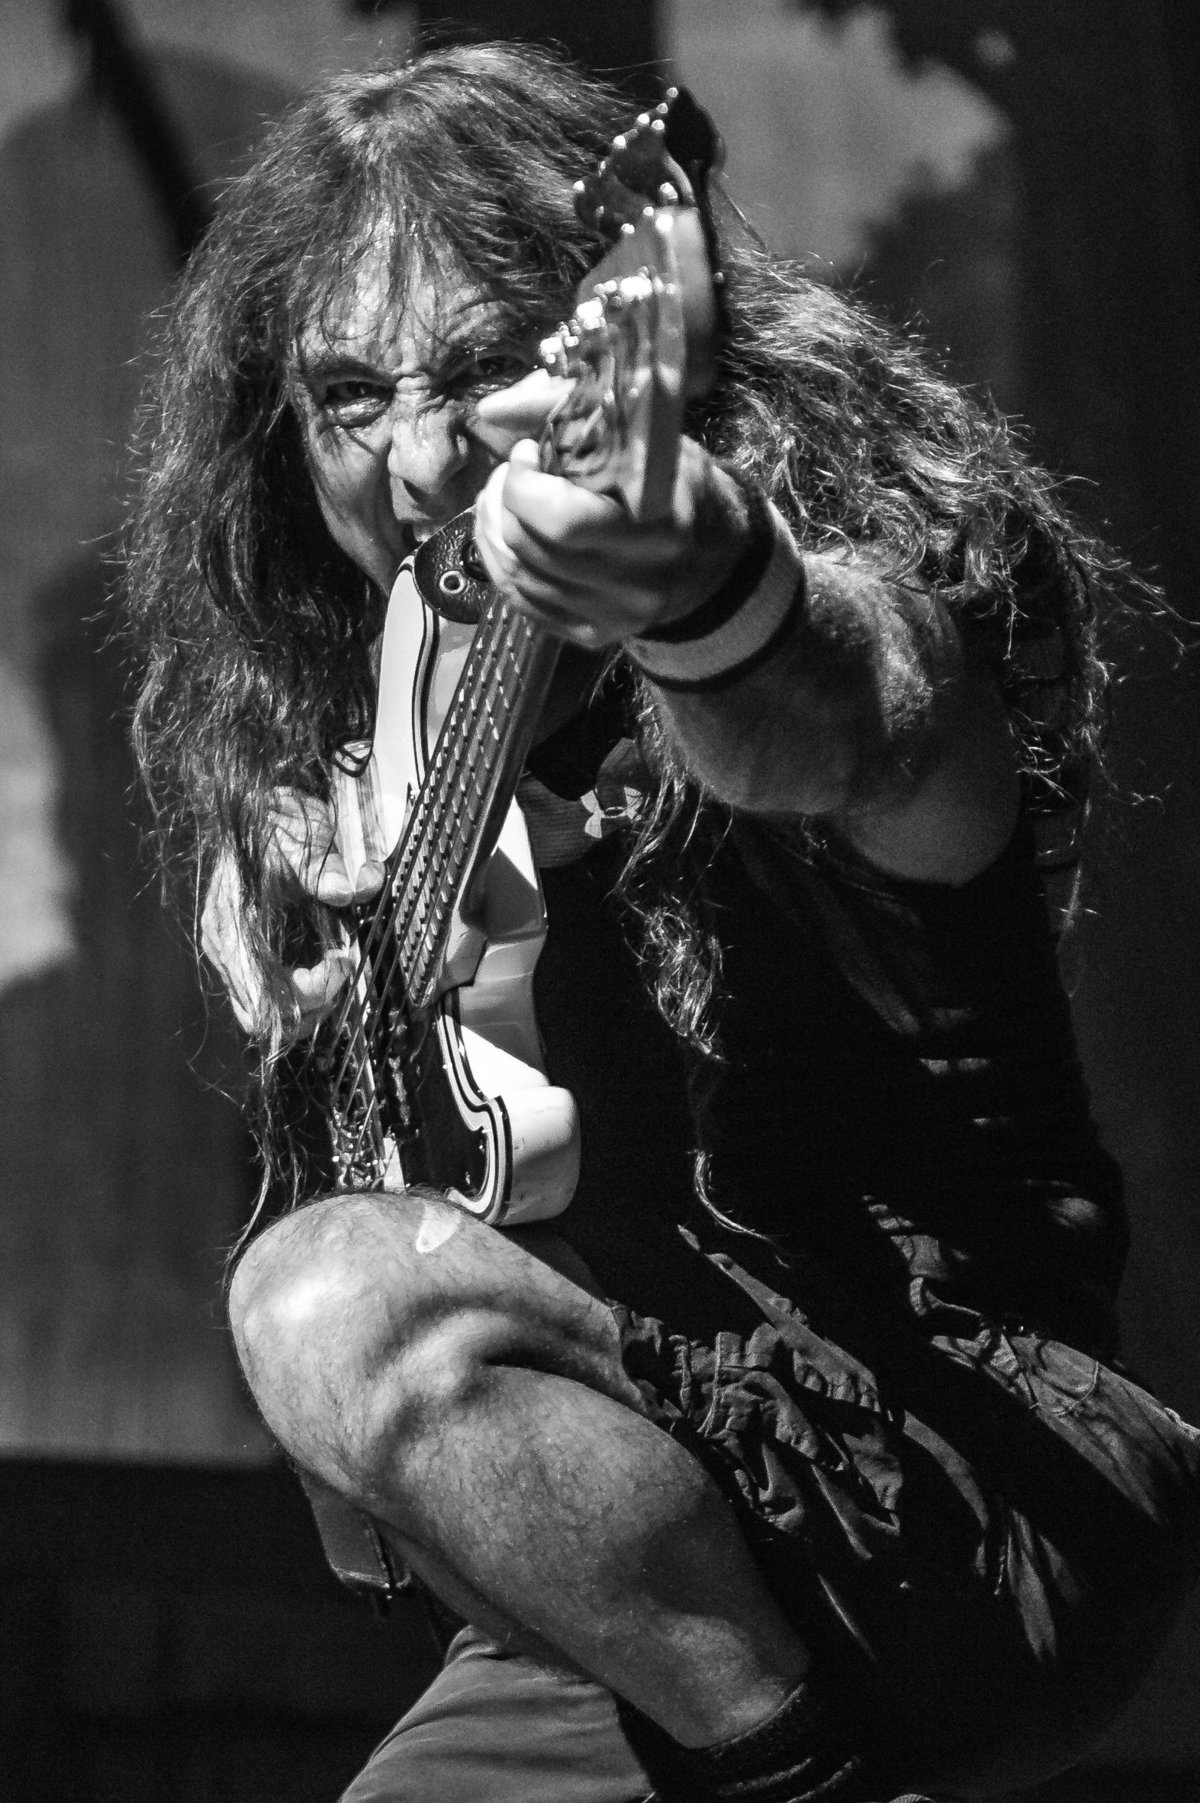 Steve Harris of Iron Maiden pointing guitar at camera